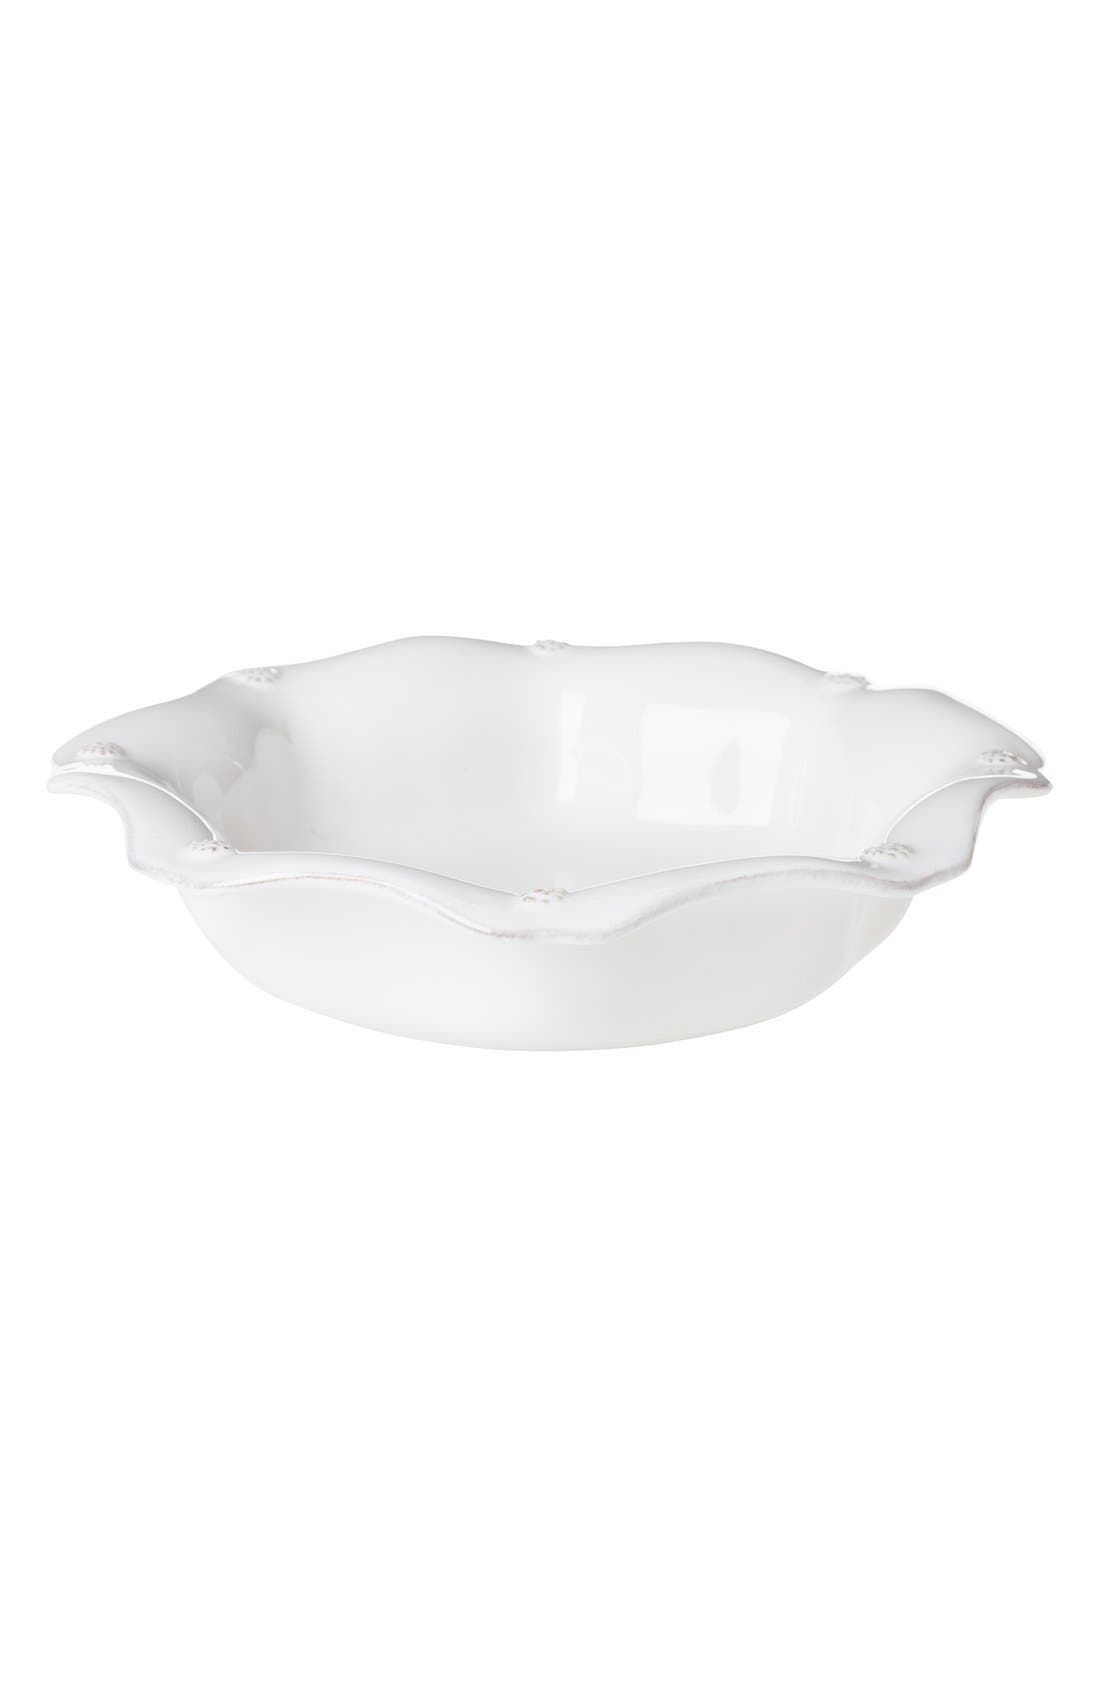 'Berry and Thread' Scallop Pasta Bowl,                             Main thumbnail 1, color,                             100